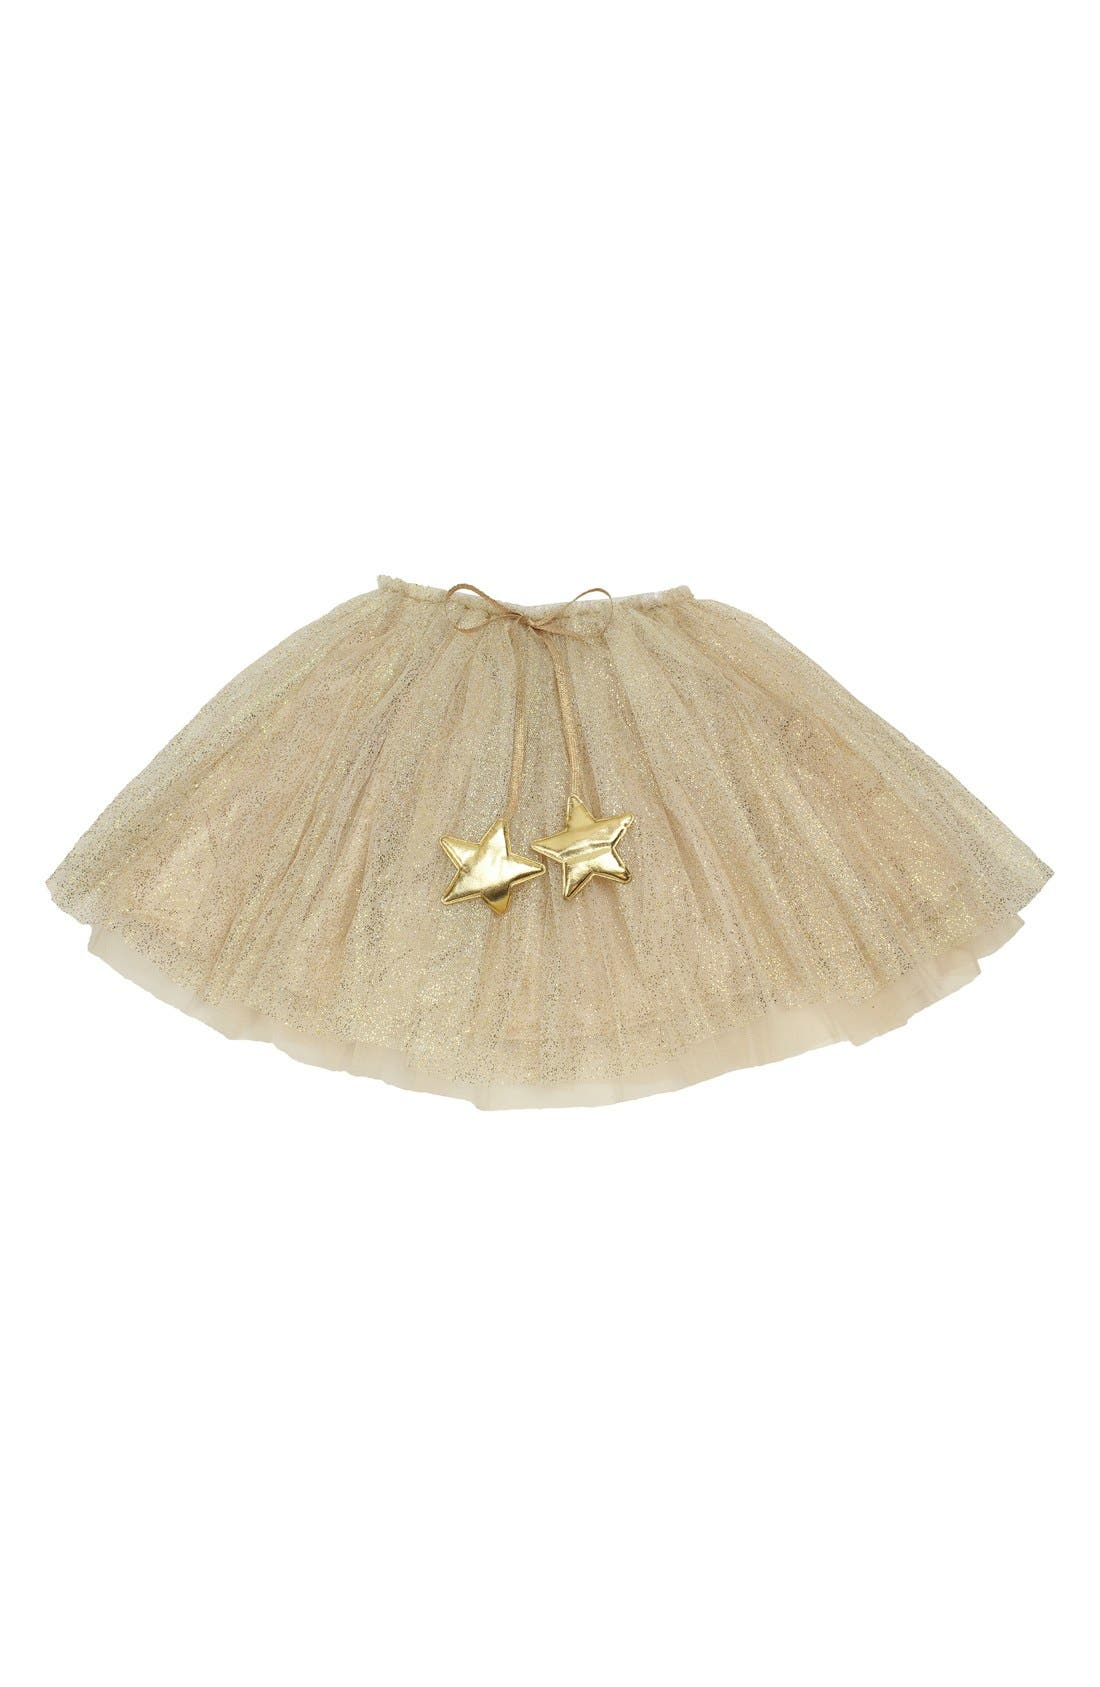 Gold Glitter Star Tutu,                             Main thumbnail 1, color,                             GOLD